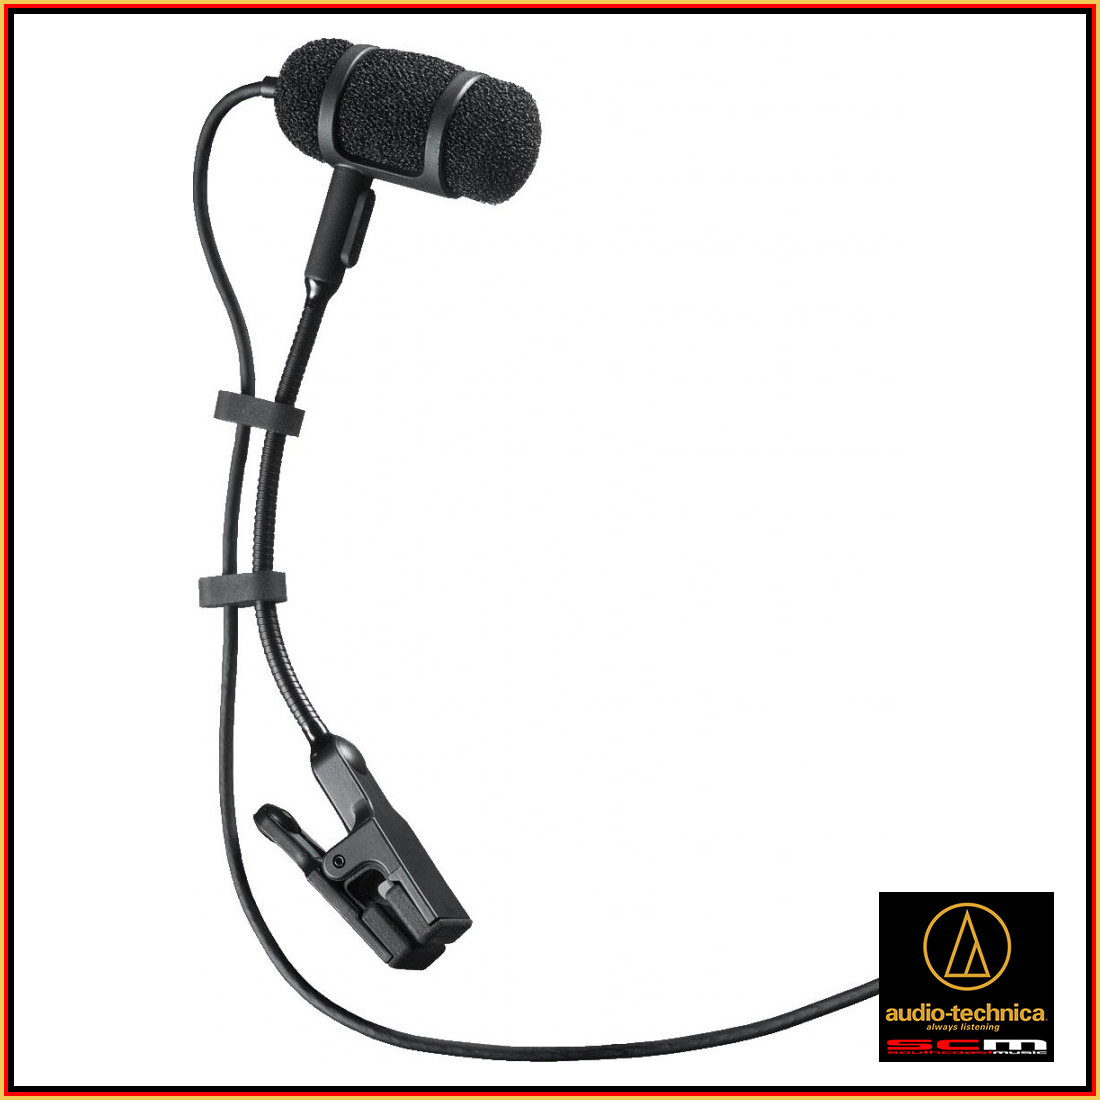 audio-technica ATM-350CW cardioid instrument microphone with clip to suit brass, upright bass, reeds, piano, snare, toms, and violin. Terminated with a locking 4-pin connector for A-T UniPak® body-pack wireless transmitters.